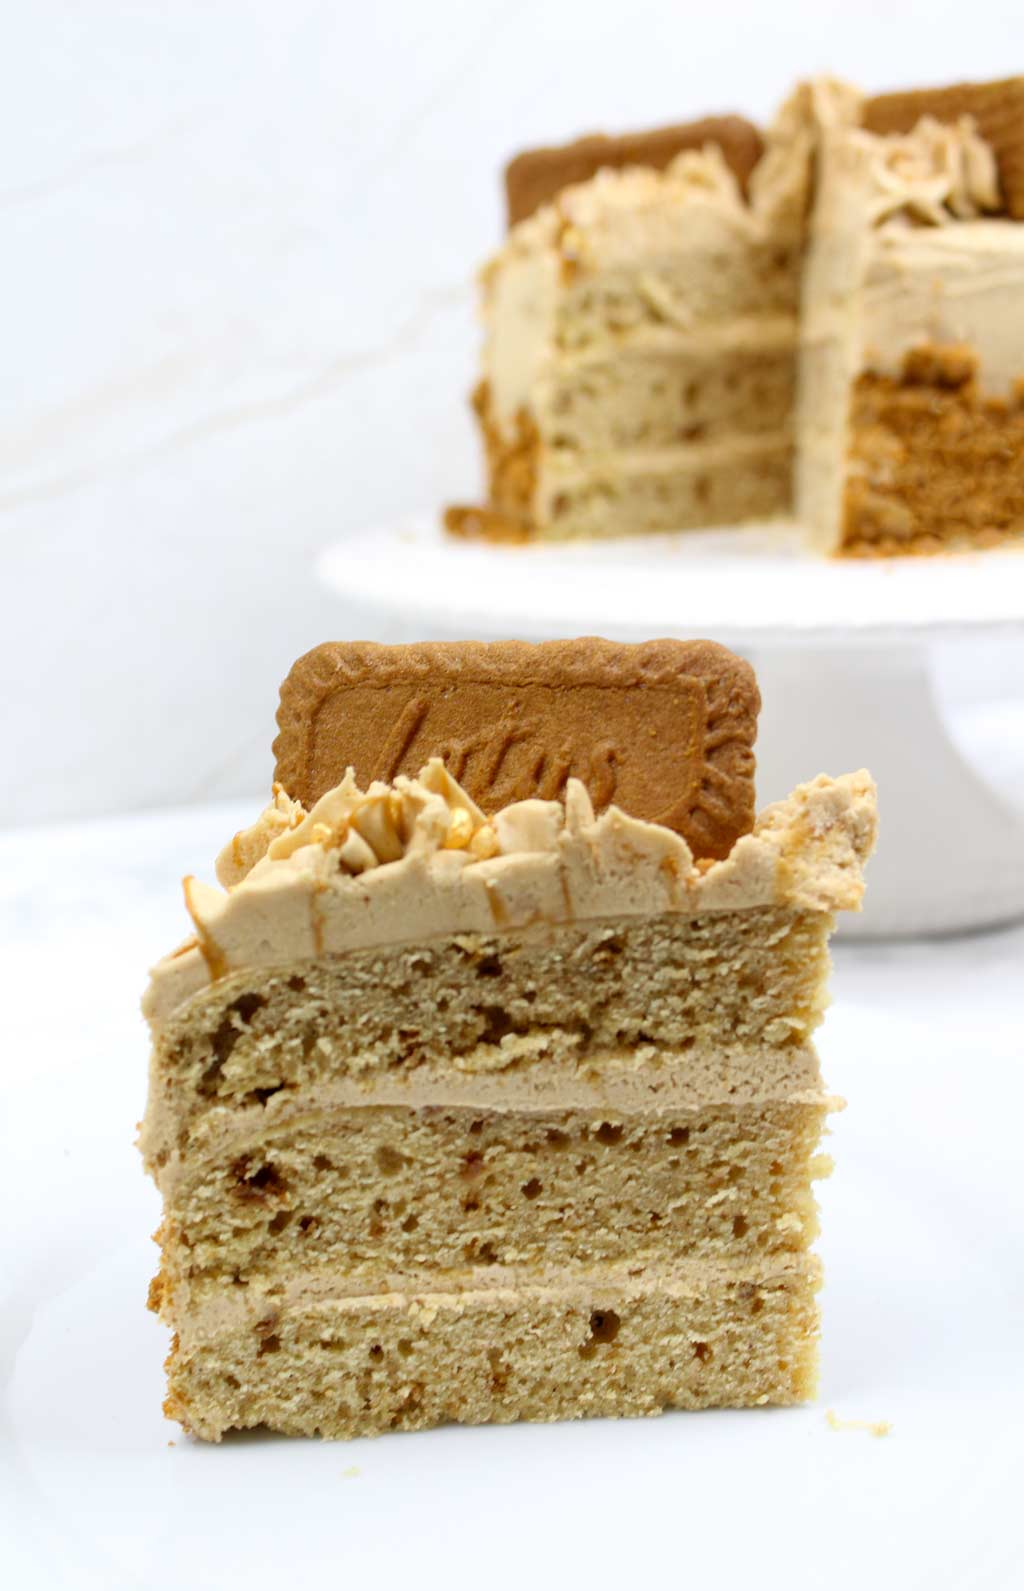 a slice of biscoff cake with the rest of the cake behind it on a cake stand